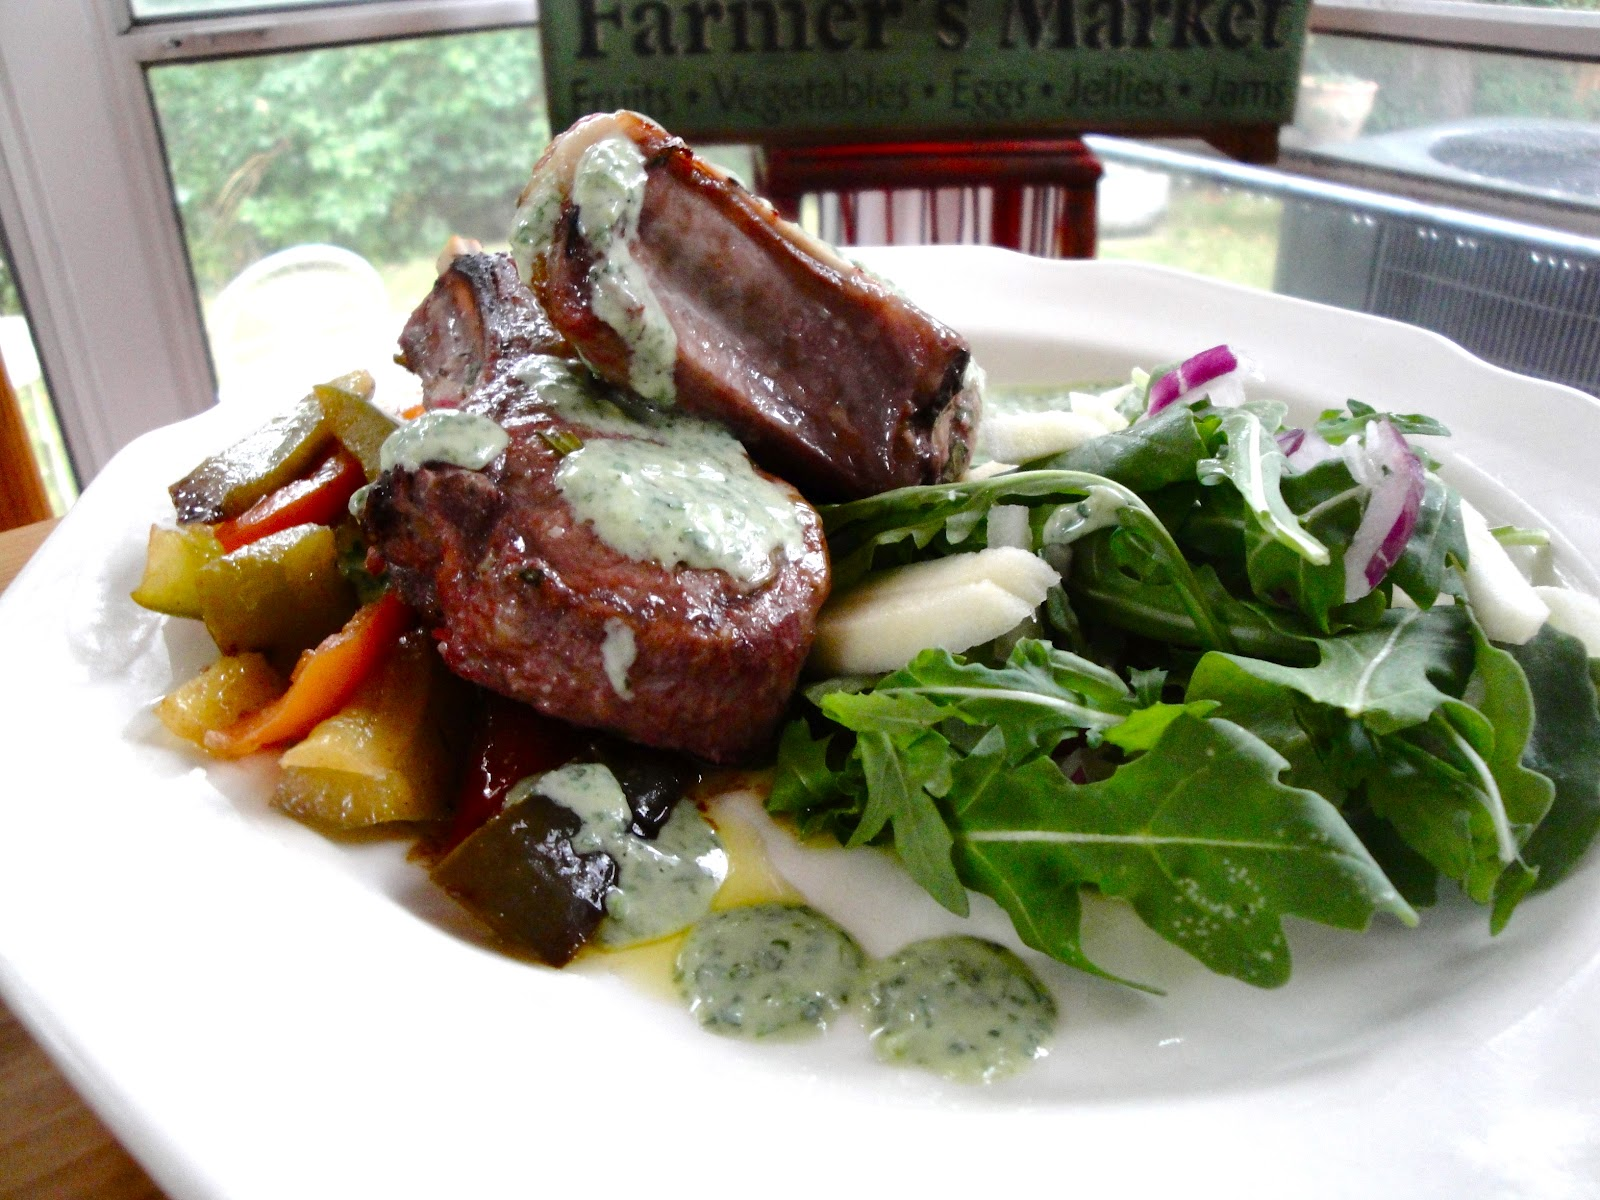 Rachael's Dinner Table: Roasted Lamb Chops with Peppers & Herb Yogurt